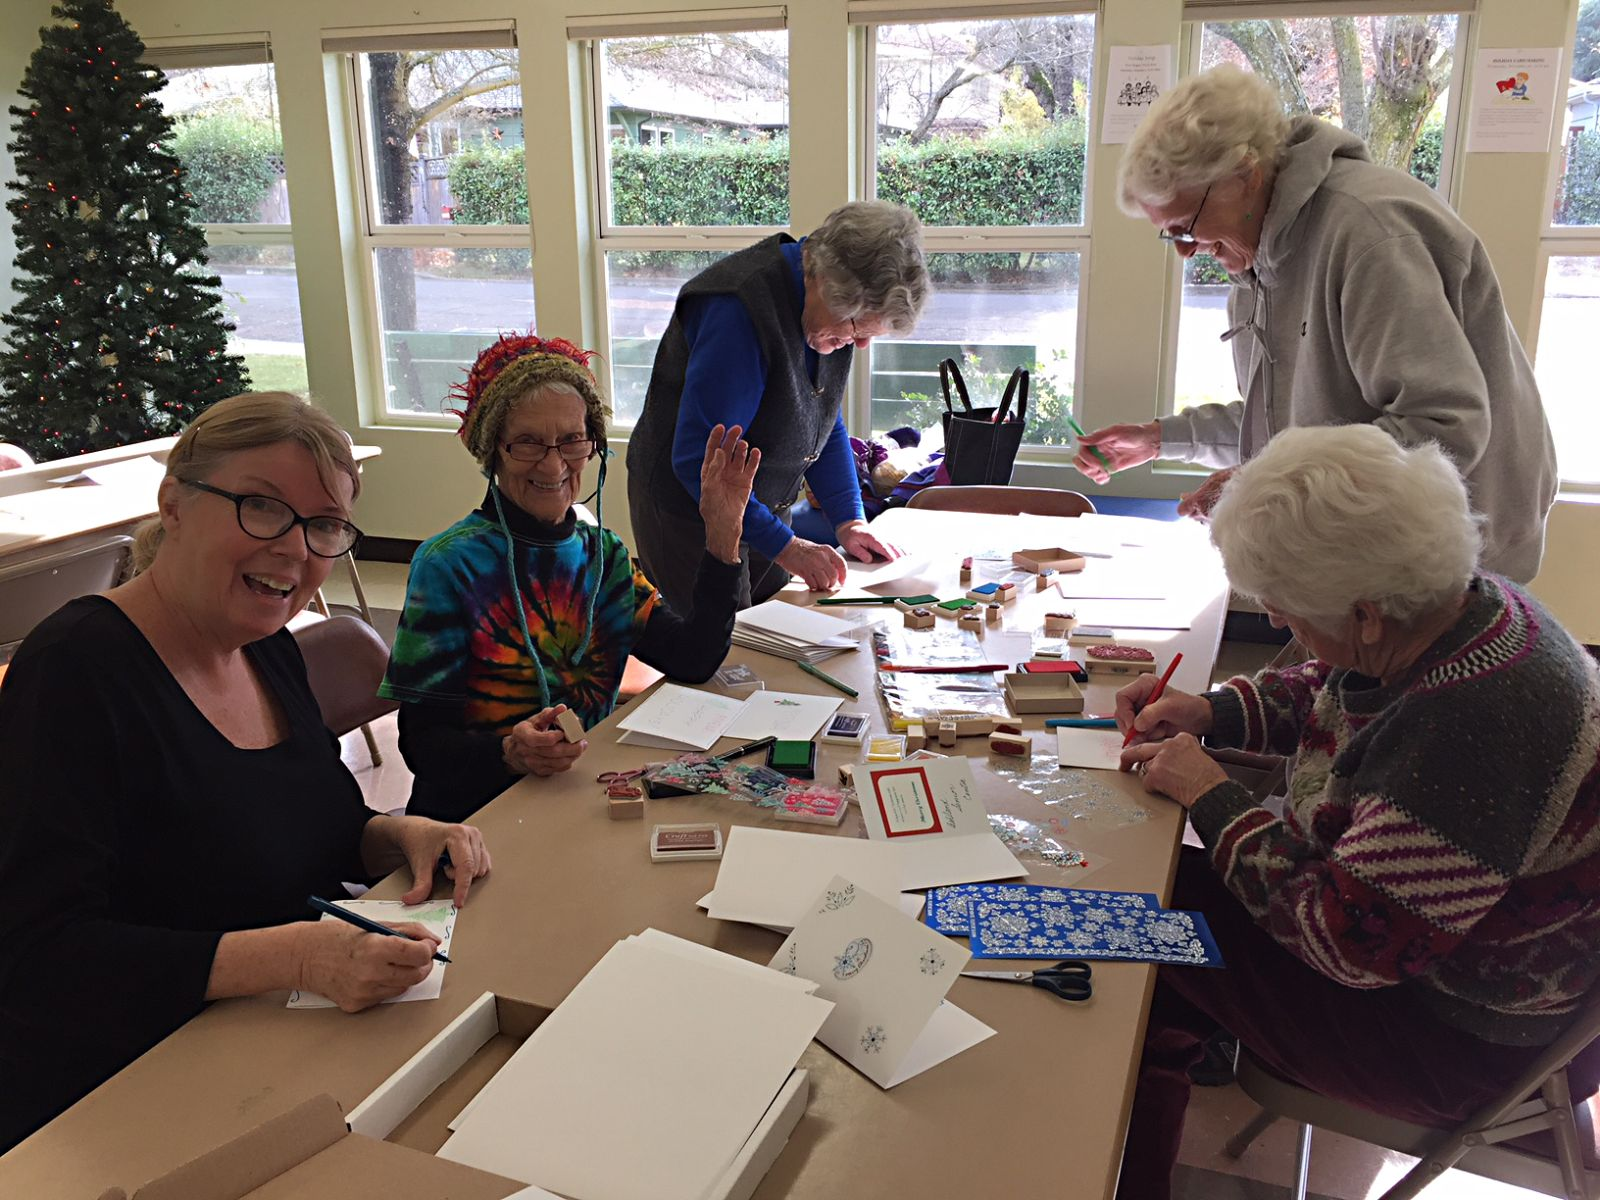 Card-making event at the Ashland Senior Center